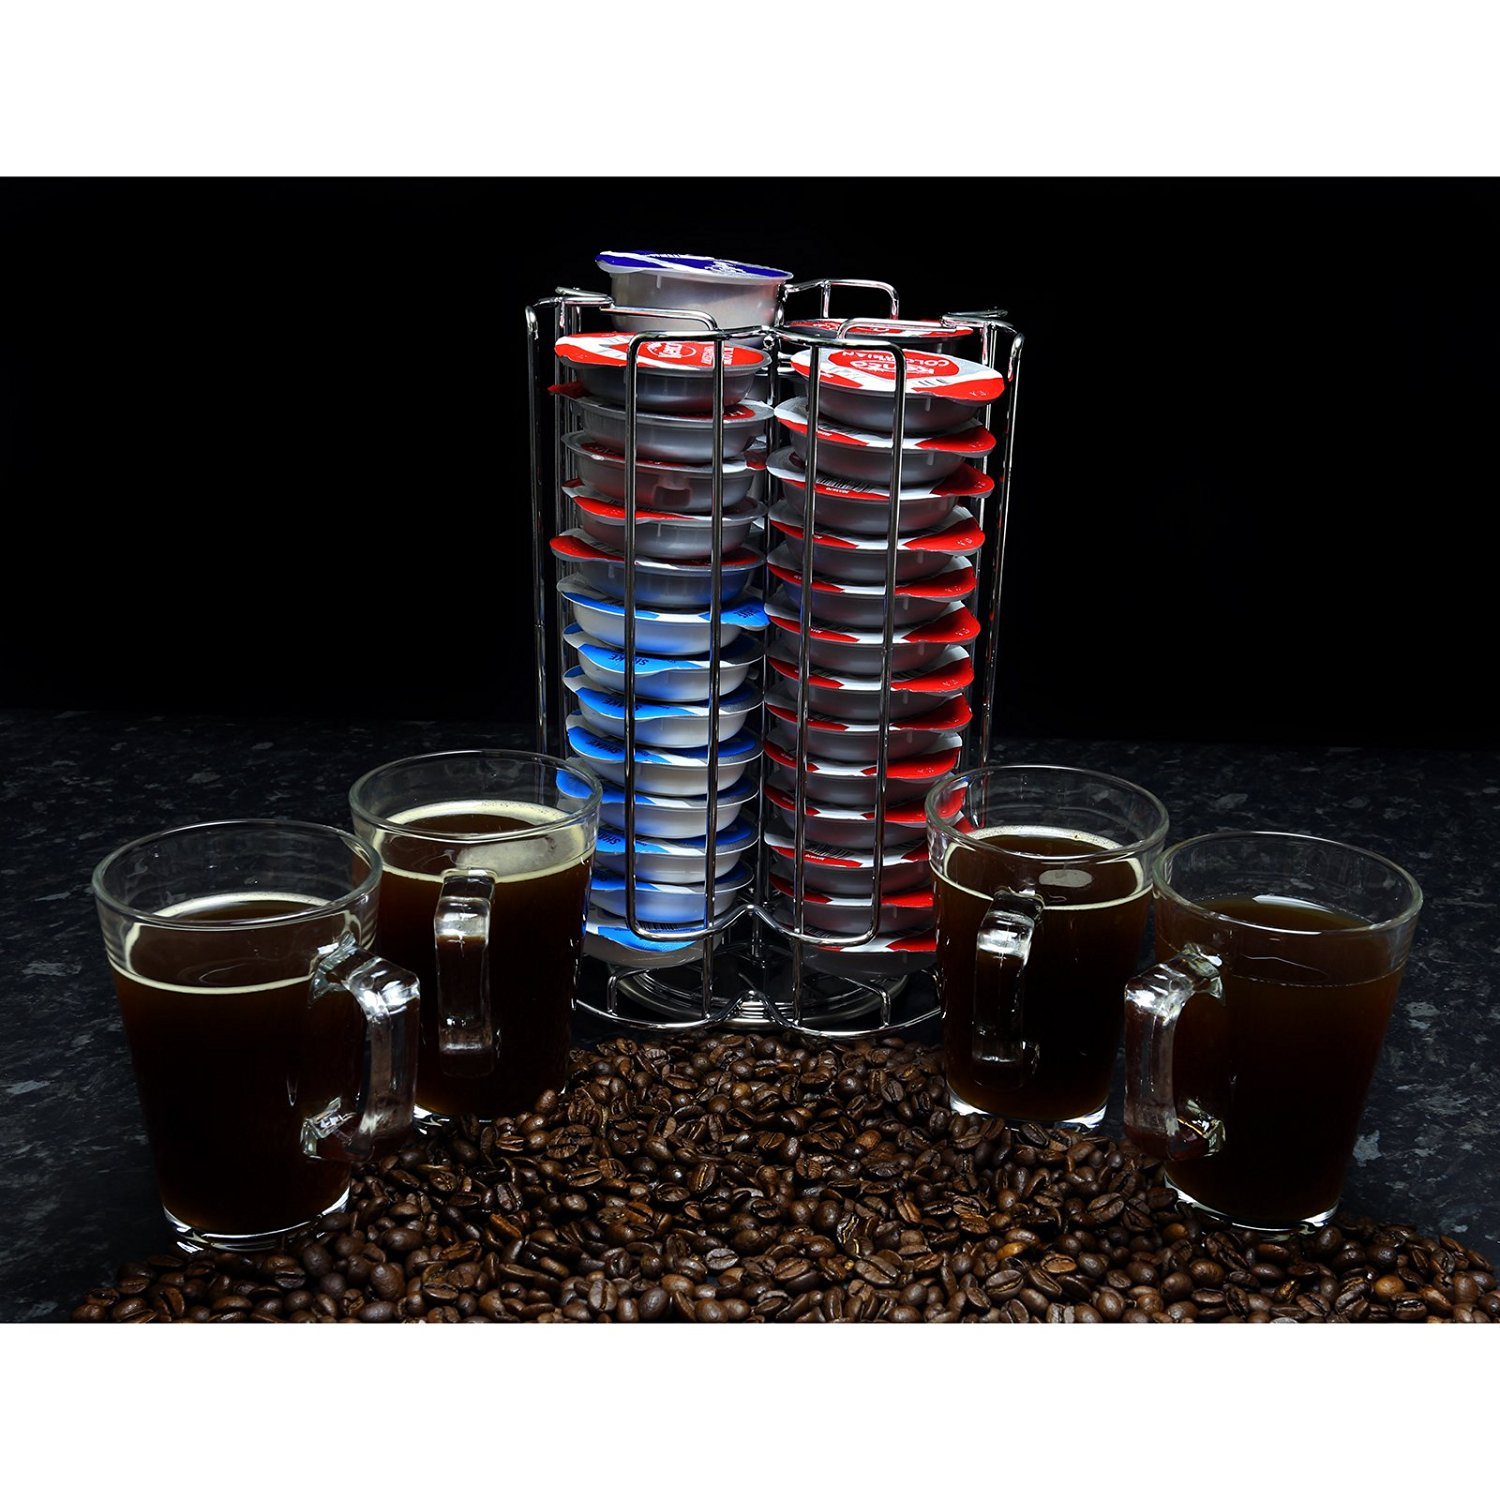 First4Spares Premium Revolving Chrome Tassimo 52 T-Disc Coffee Pod Capsule Holder + 4 Free Latte Glasses and Spoons